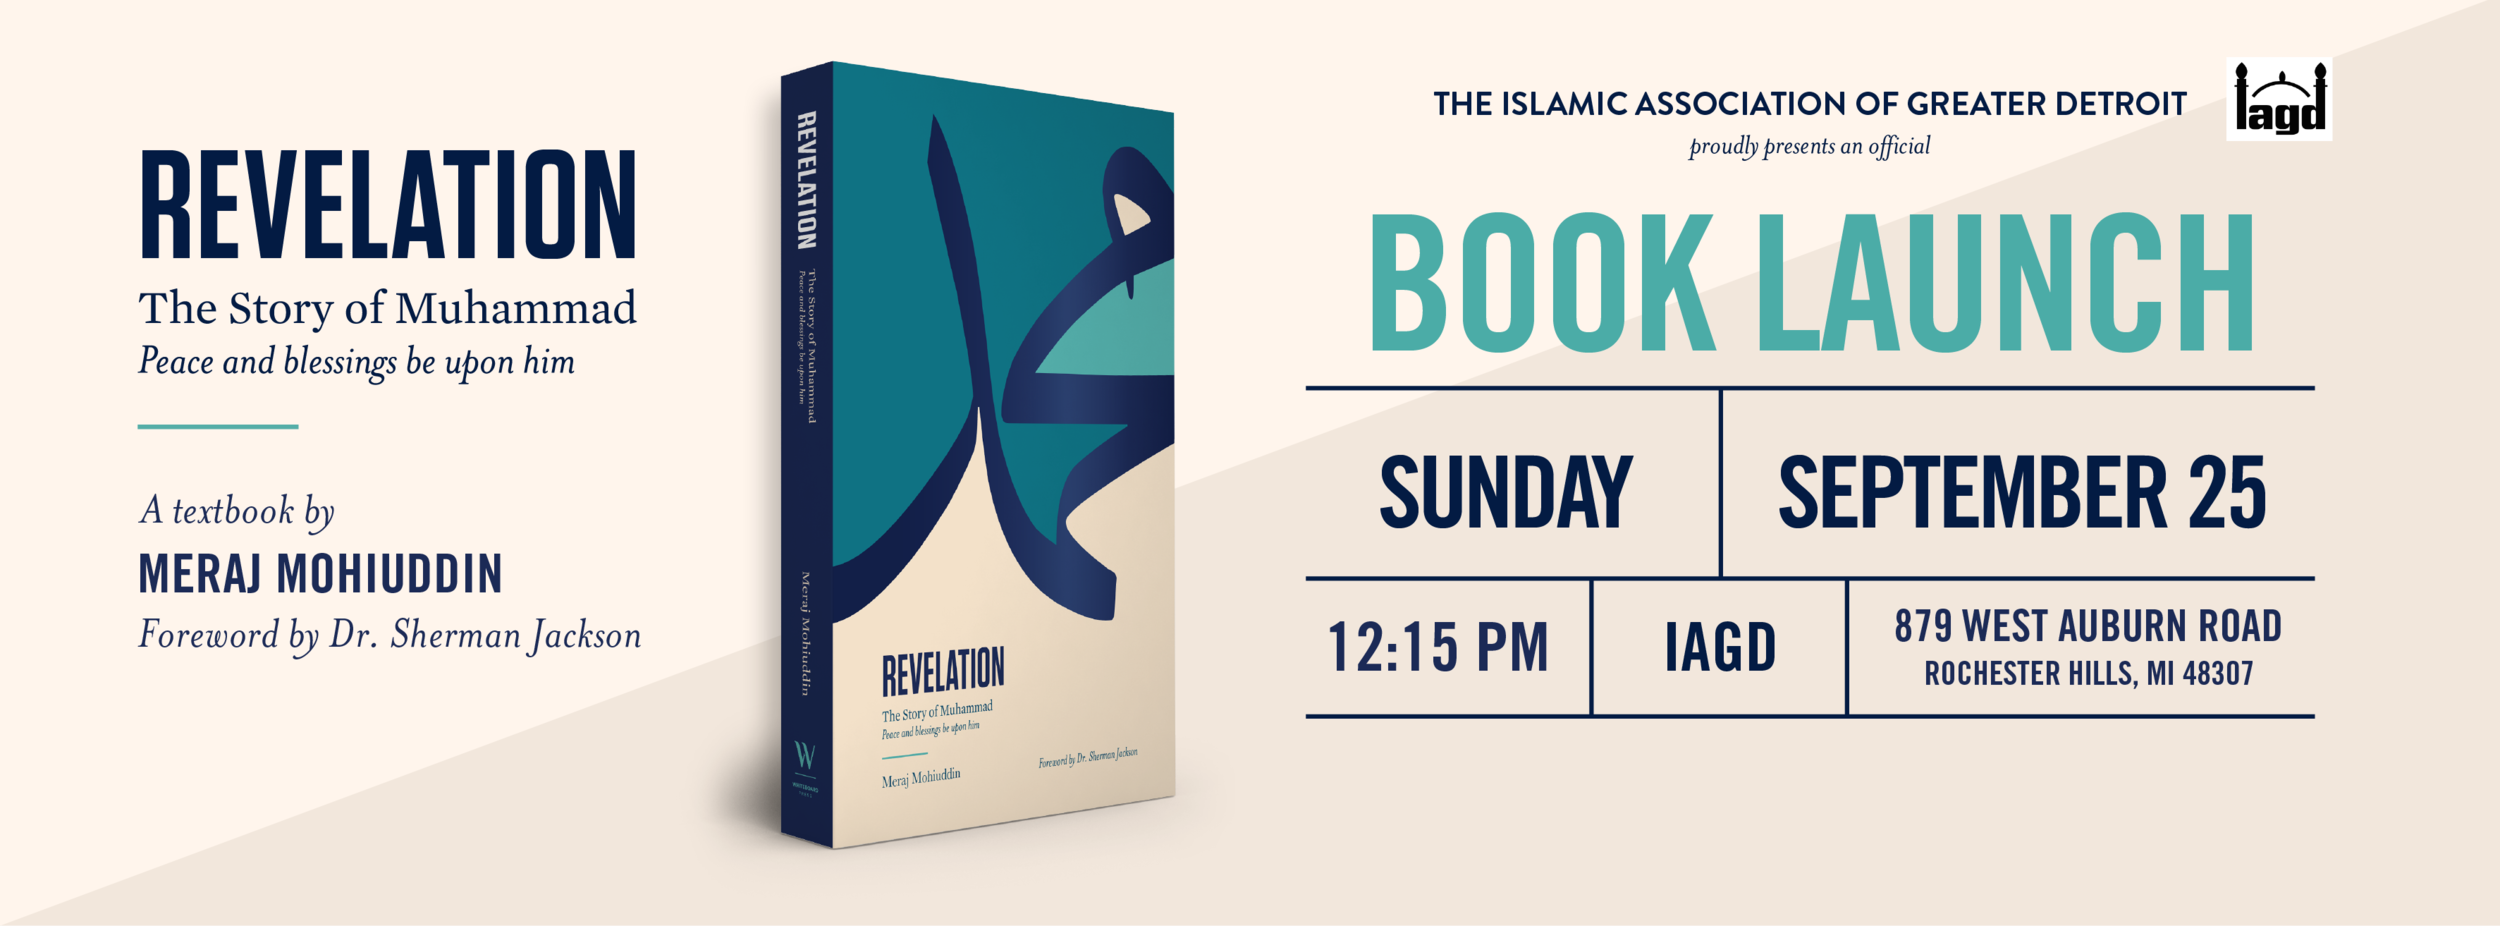 iagd-book-launch.png